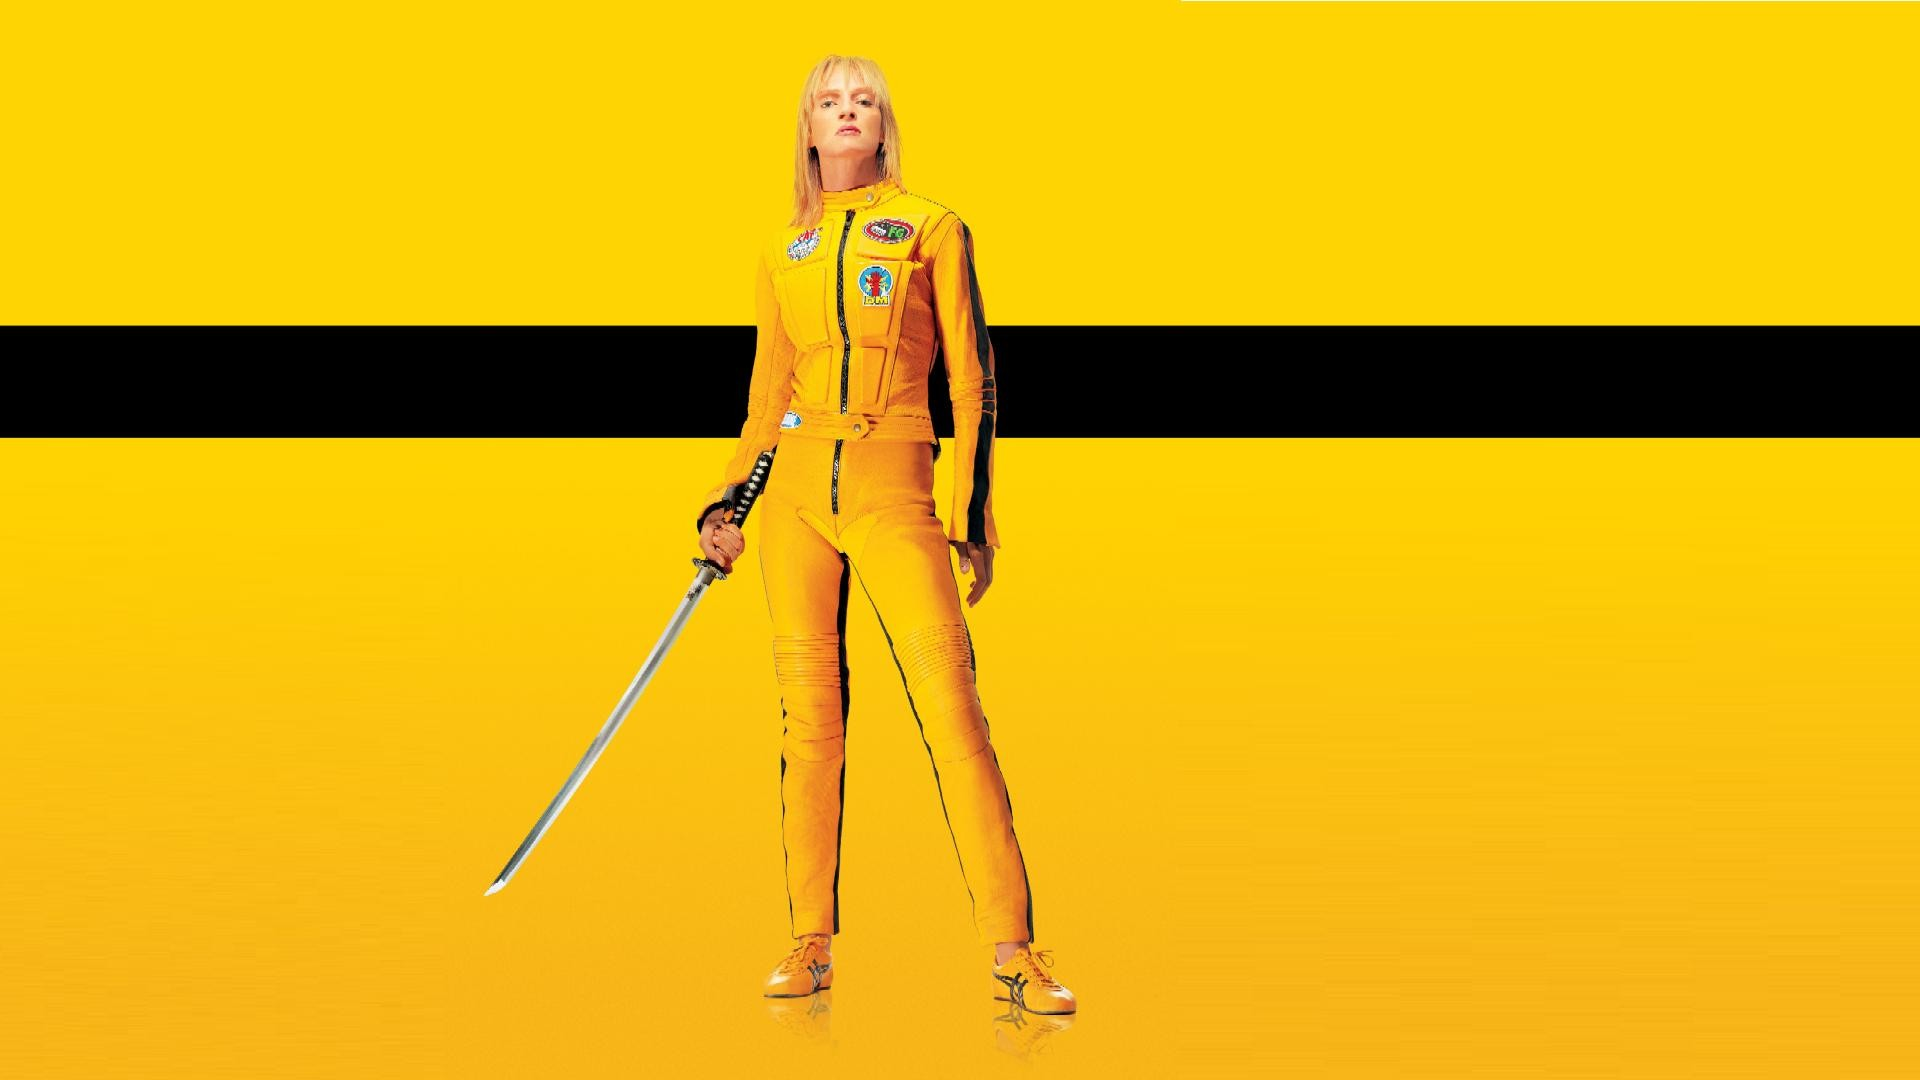 kill bill review Kill bill isn't perfect, though the fight scene with lucy liu is disappointingly short and anticlimactic review by erik samdahl unless otherwise indicated.